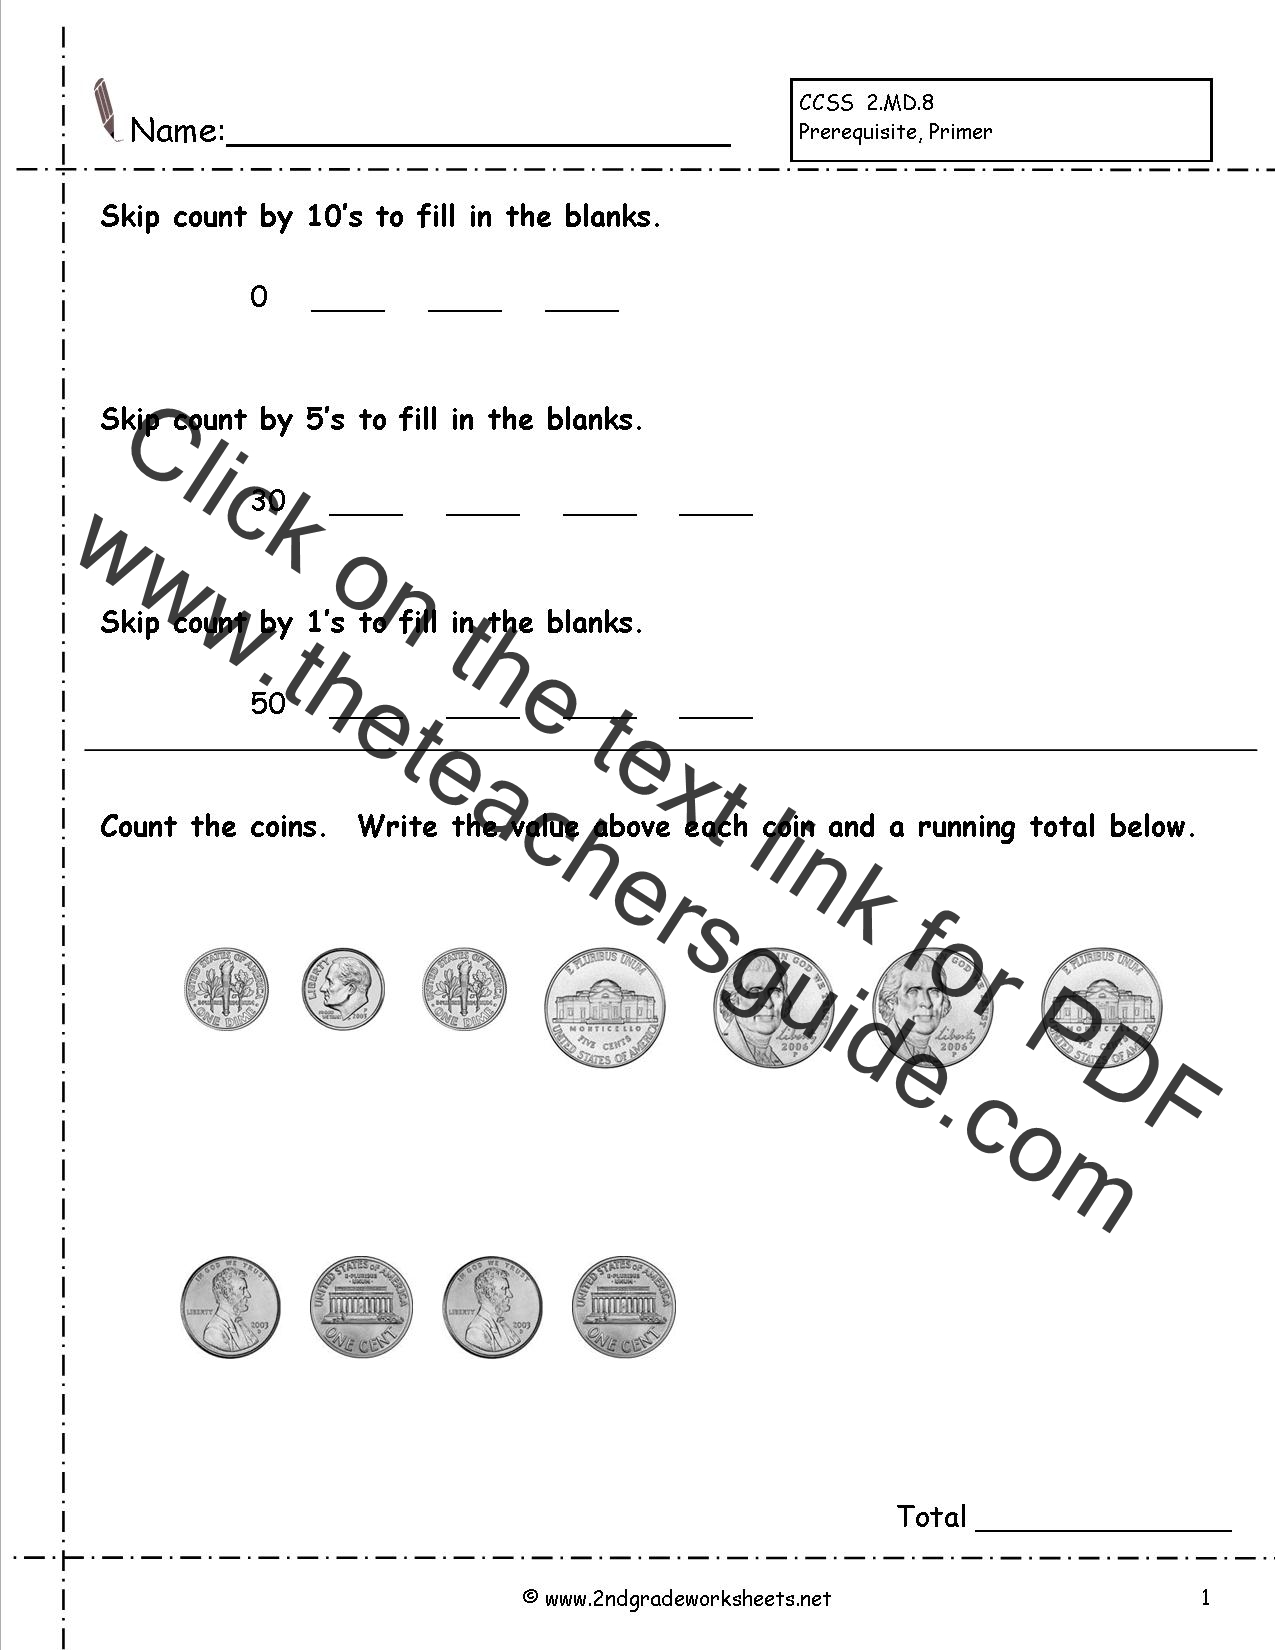 Worksheets Counting Coins Printable Worksheets counting coins and money worksheets printouts skip practice worksheet